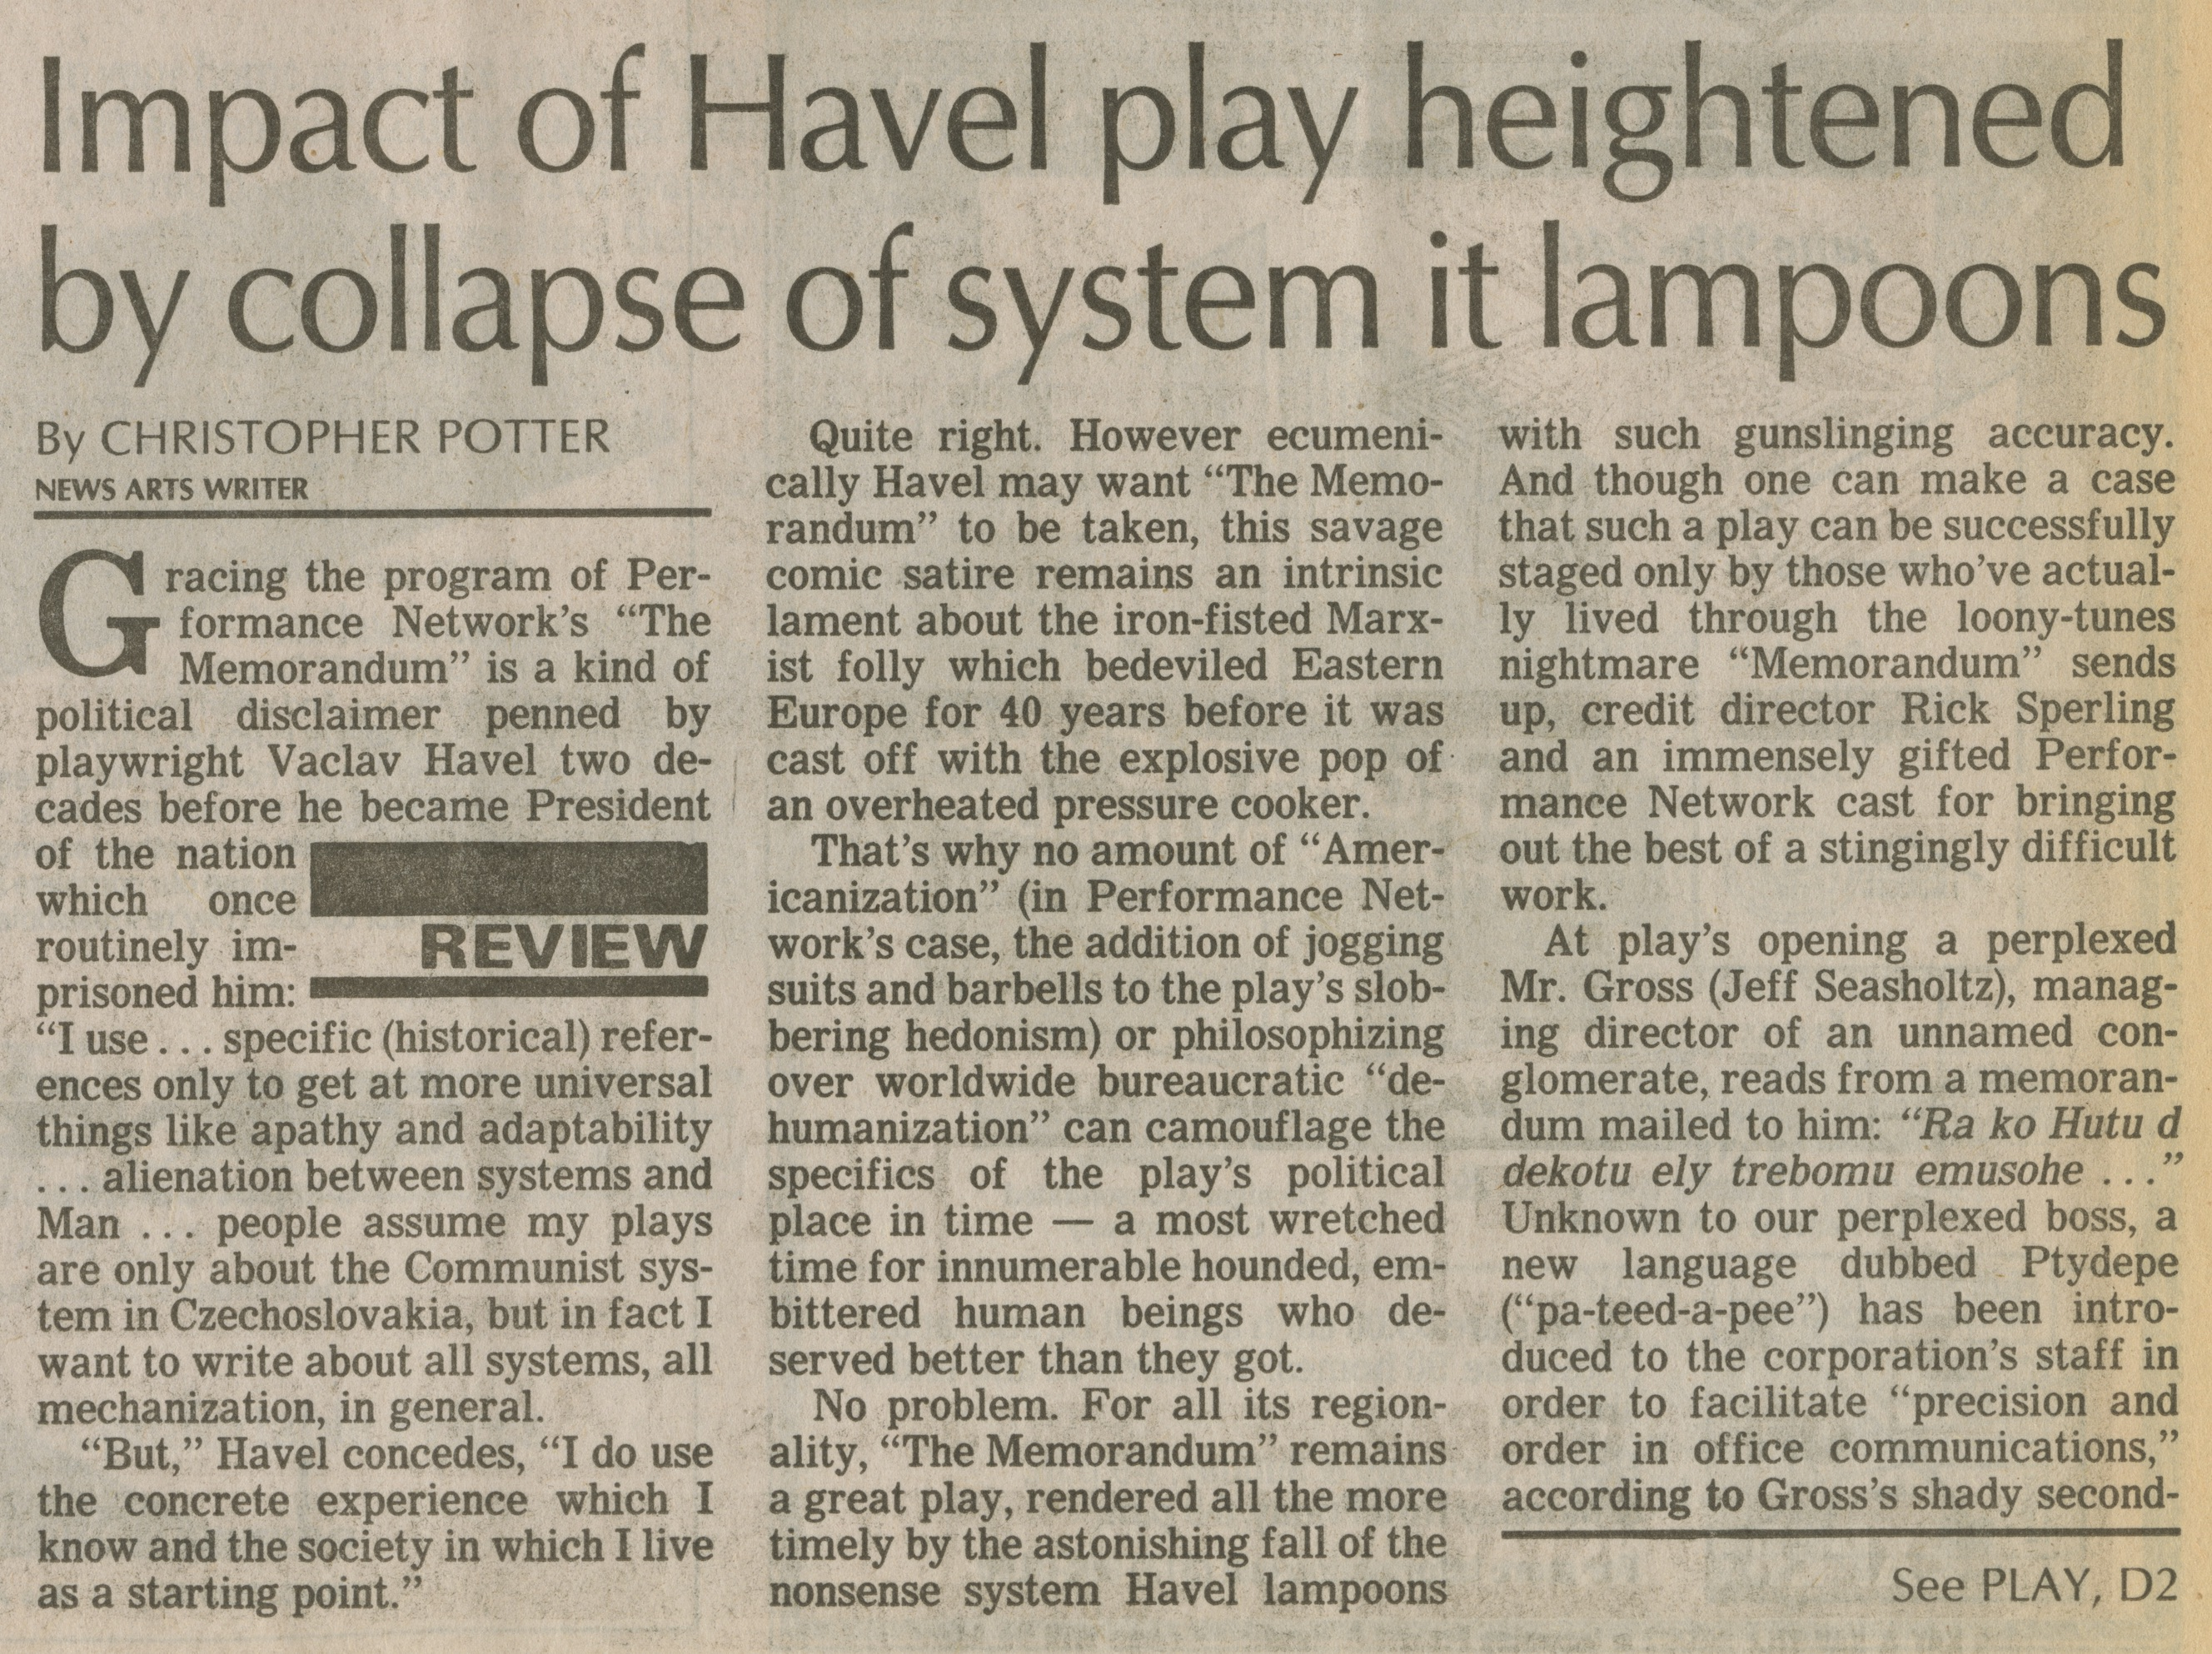 Impact of Havel play heightened by collapse of system it lampoons image